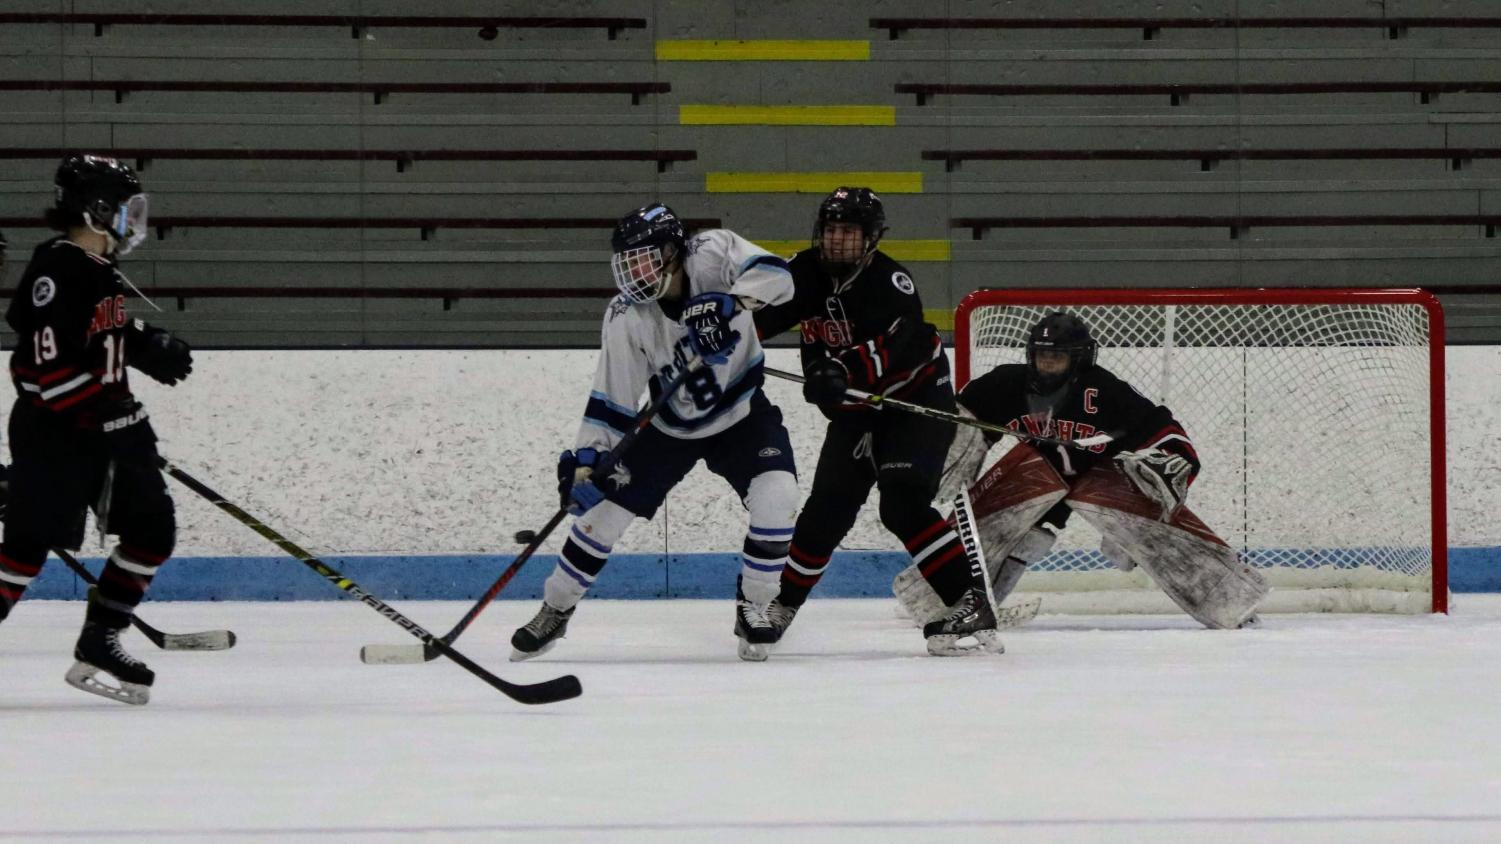 Junior Jack Niska battles for the tip in front of North Andover's net.